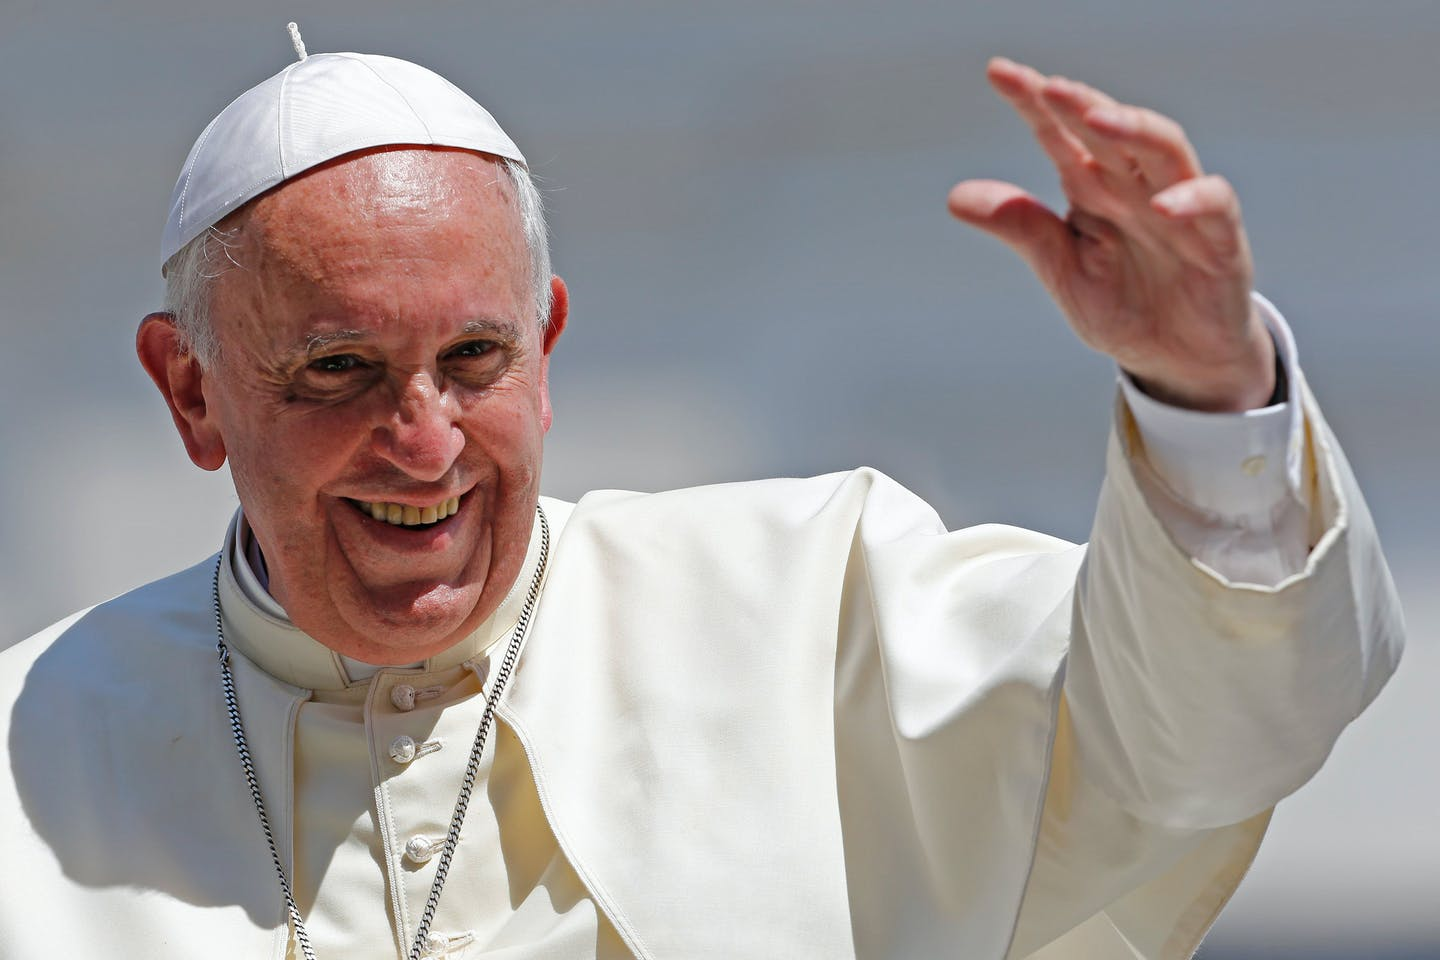 Pope Francis, head of the Catholic Church